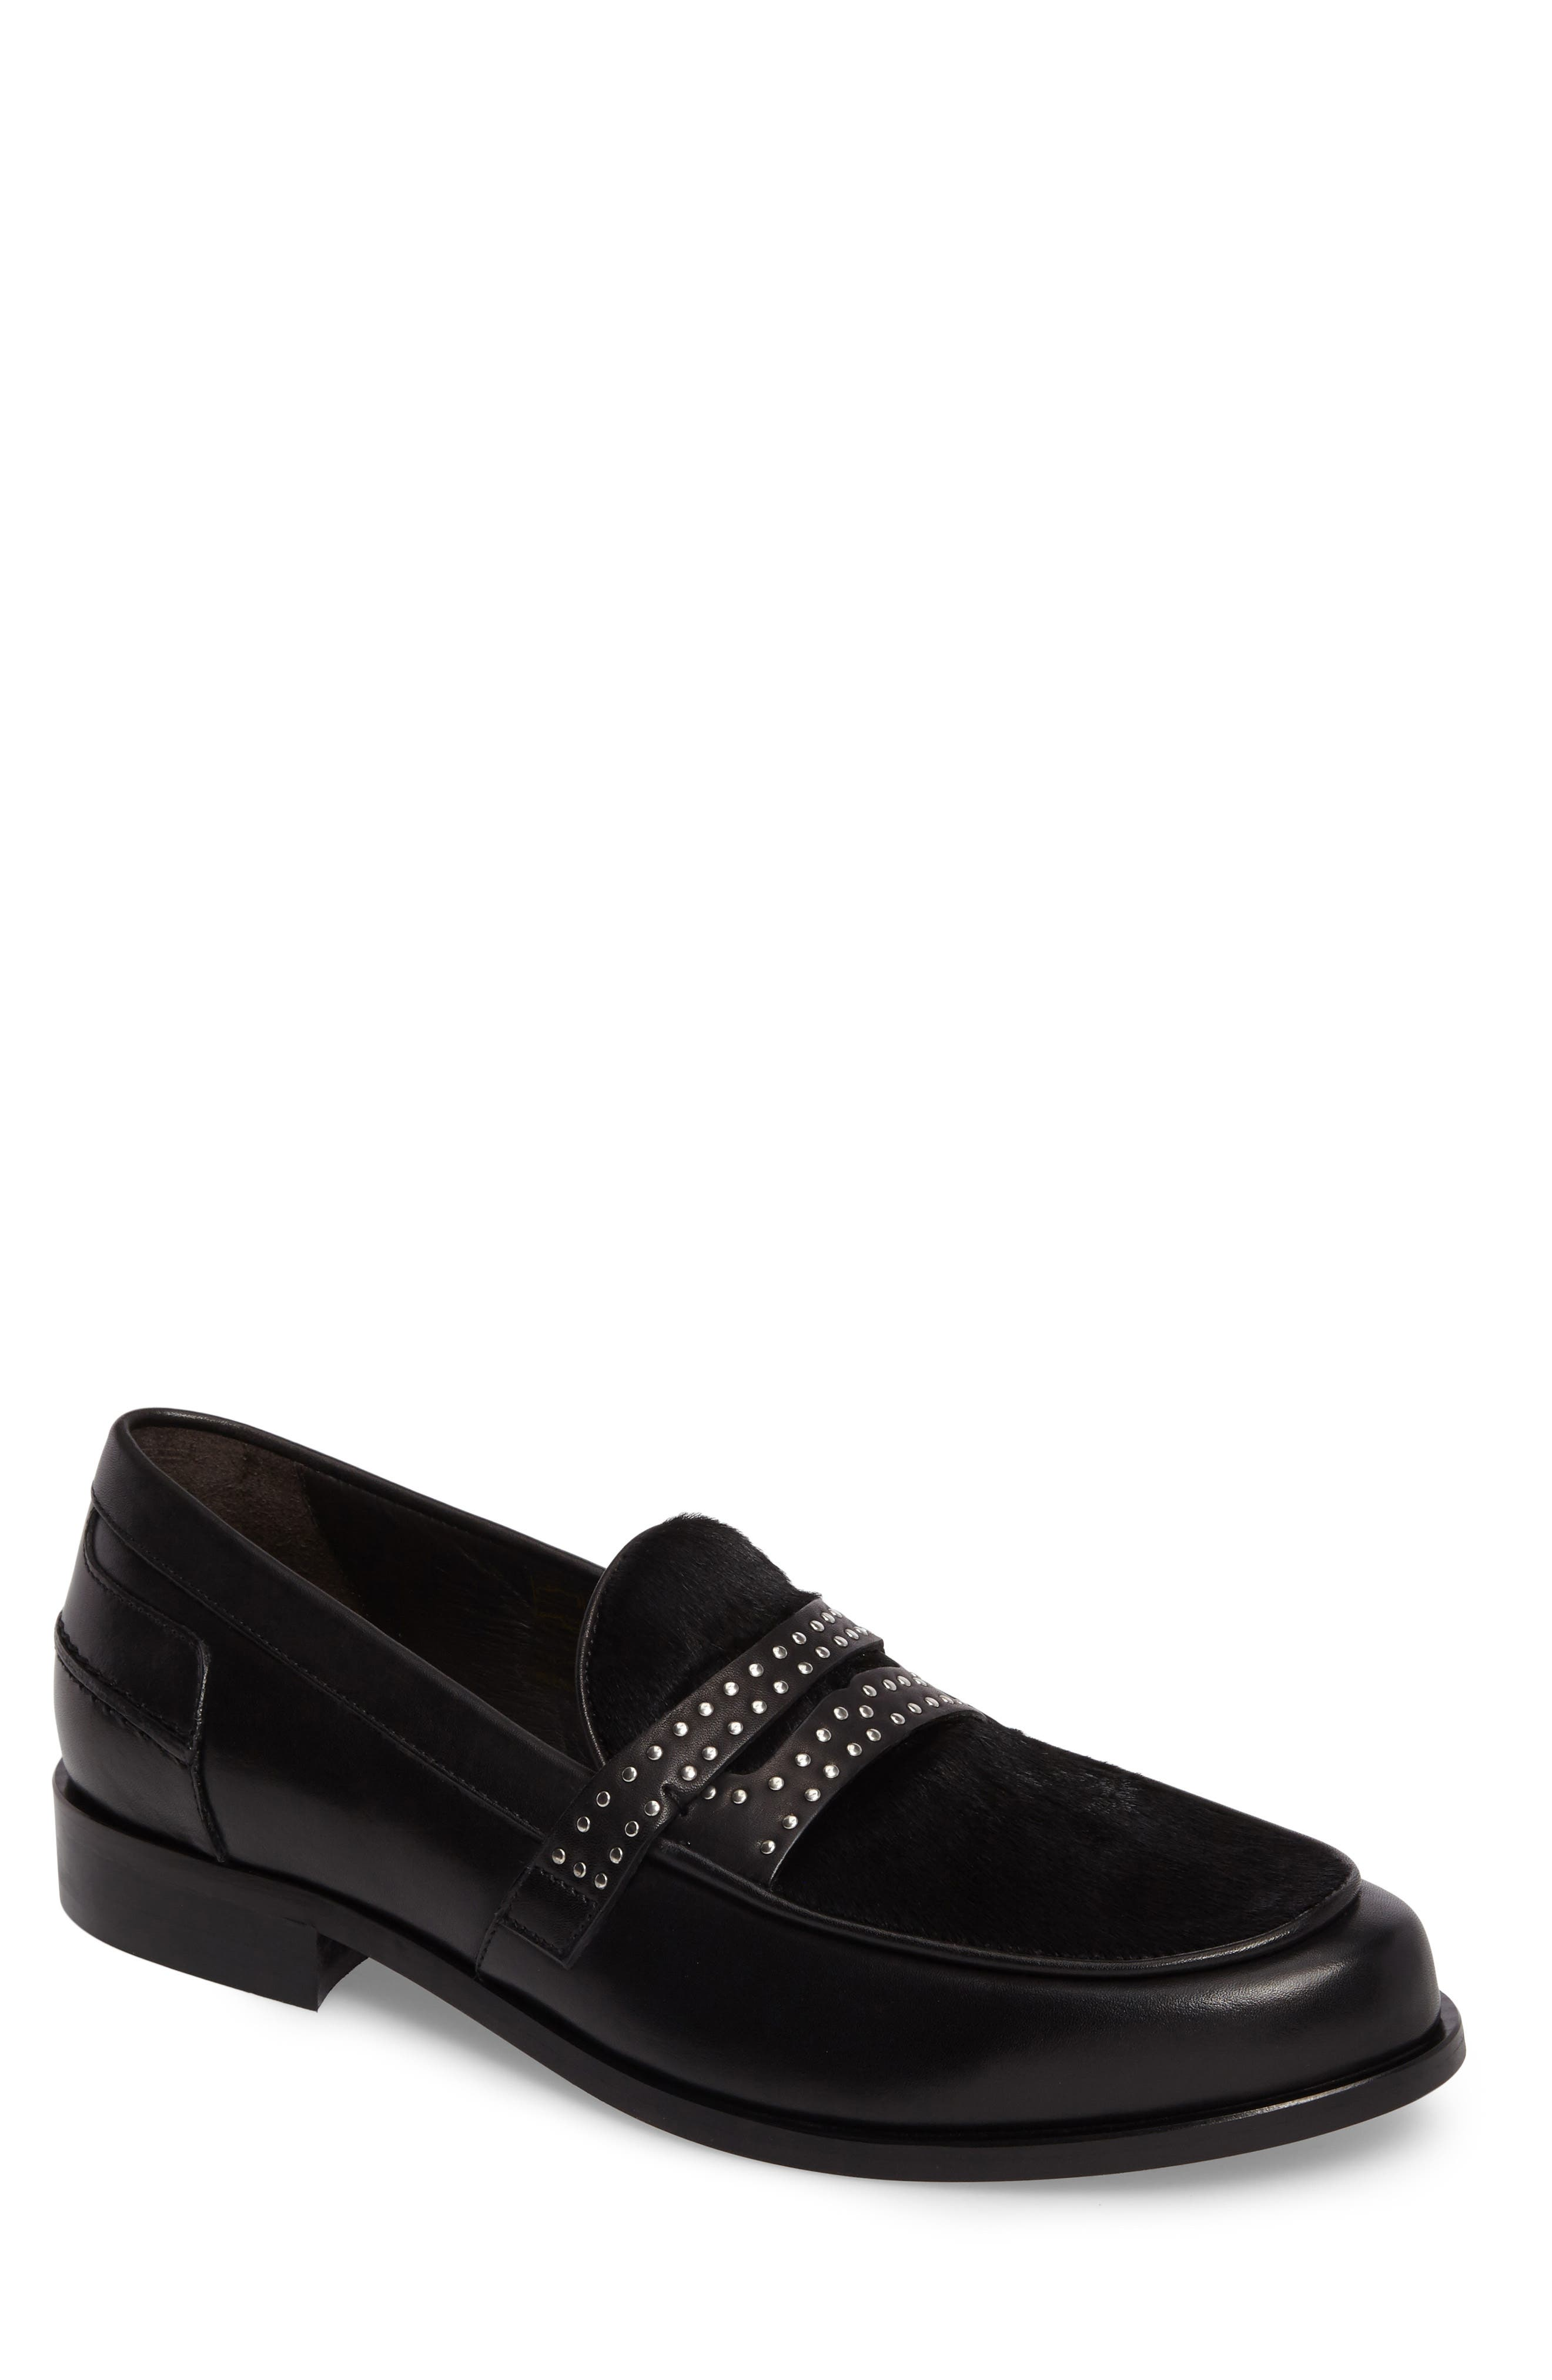 Sawyer Penny Loafer,                         Main,                         color,